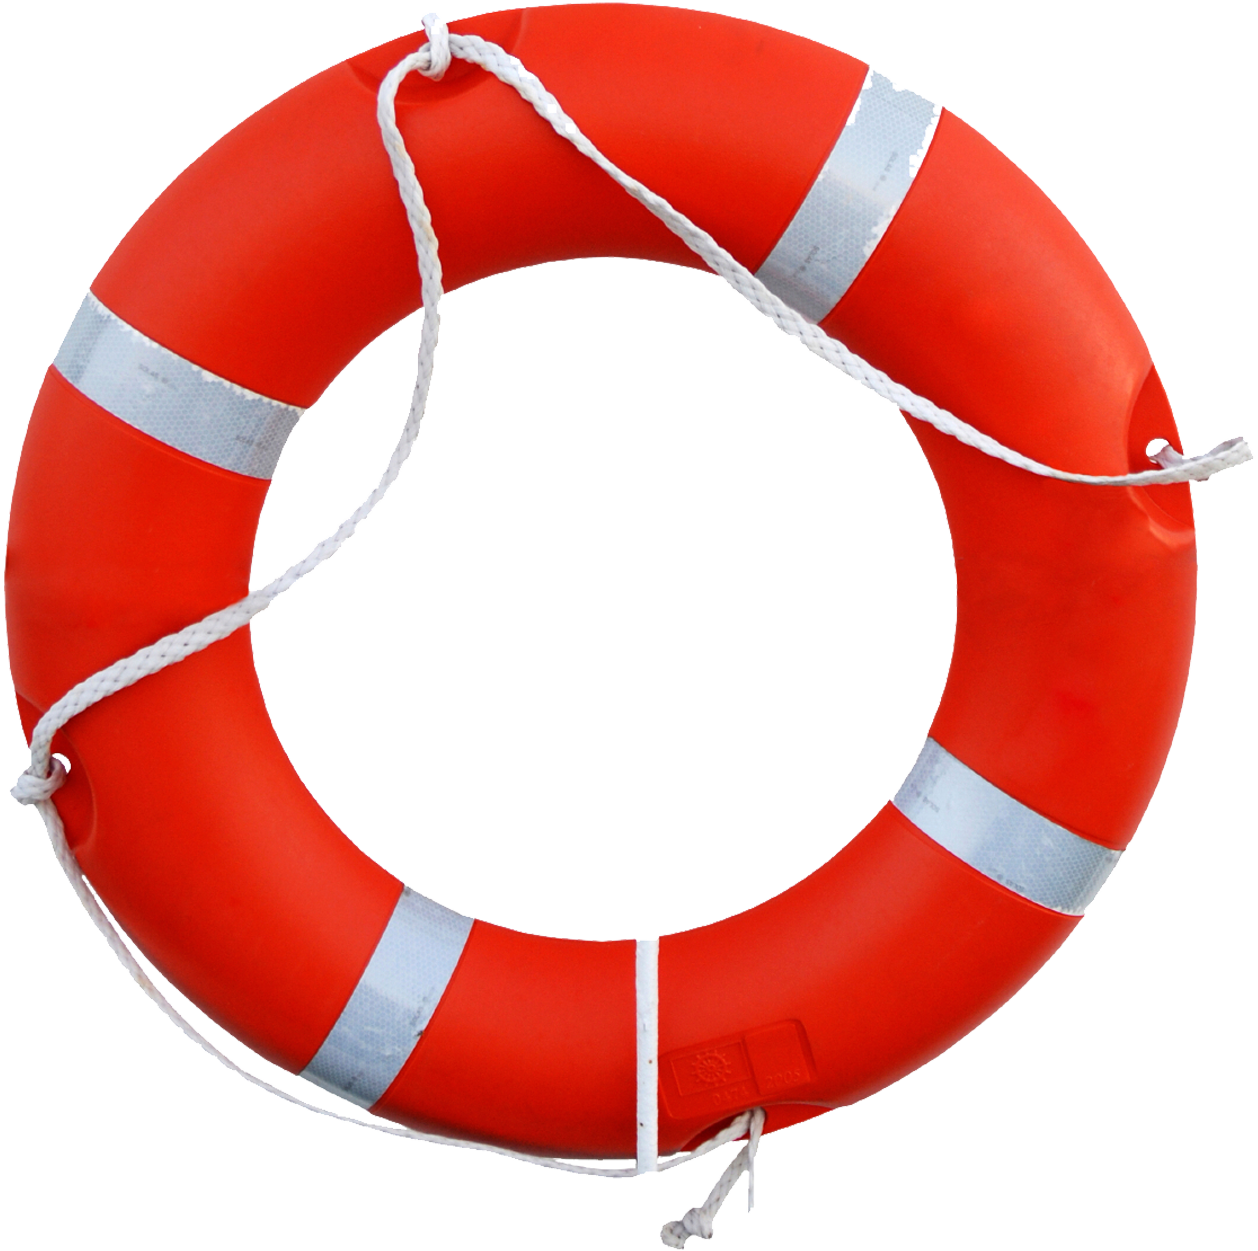 Life saver ring png. Collection of buoy